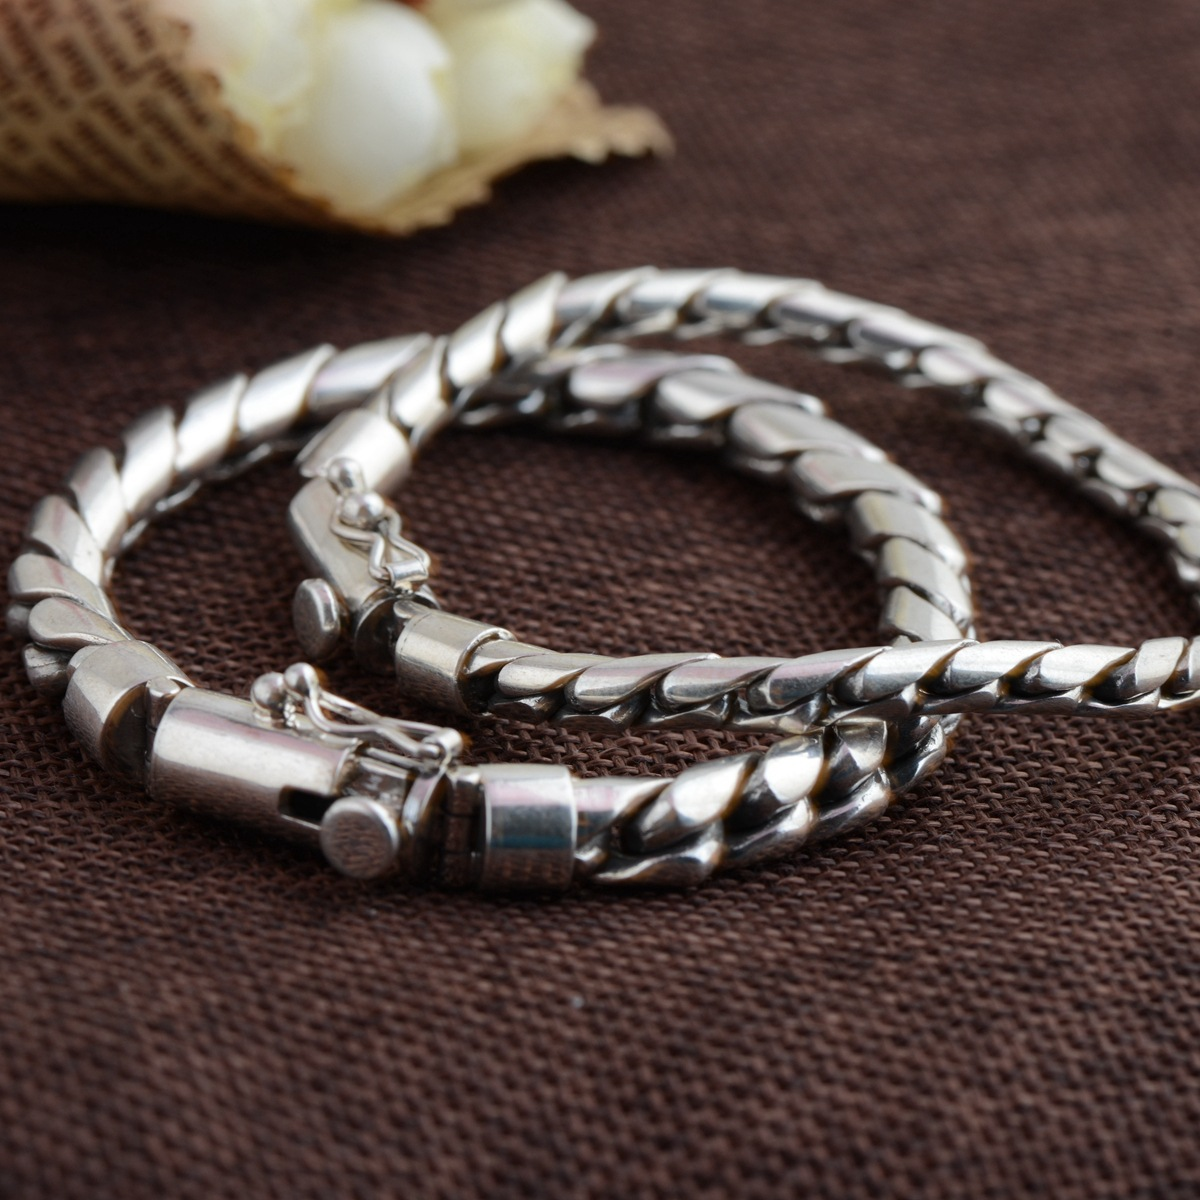 emperor wholesale jewelry line S925 silver bracelet with Thai silver male money process archaize style The new fashion 2018 new jewelry real pearl earrings s925 pure silver wholesale archaize process female present new products